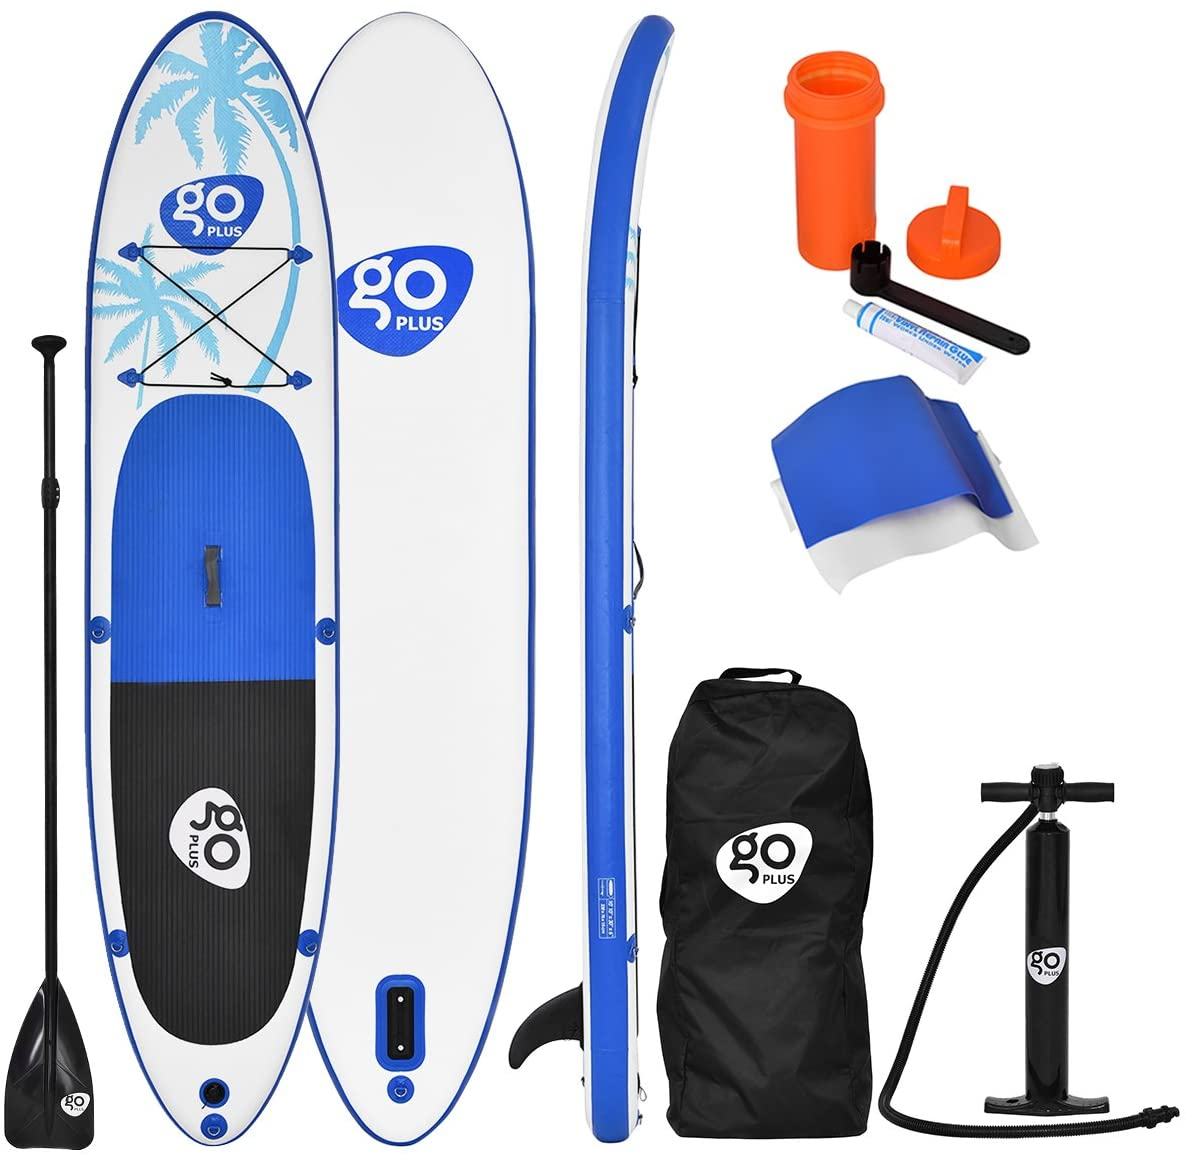 HOMGX Inflatable Stand Up Paddle Board rEVIEW